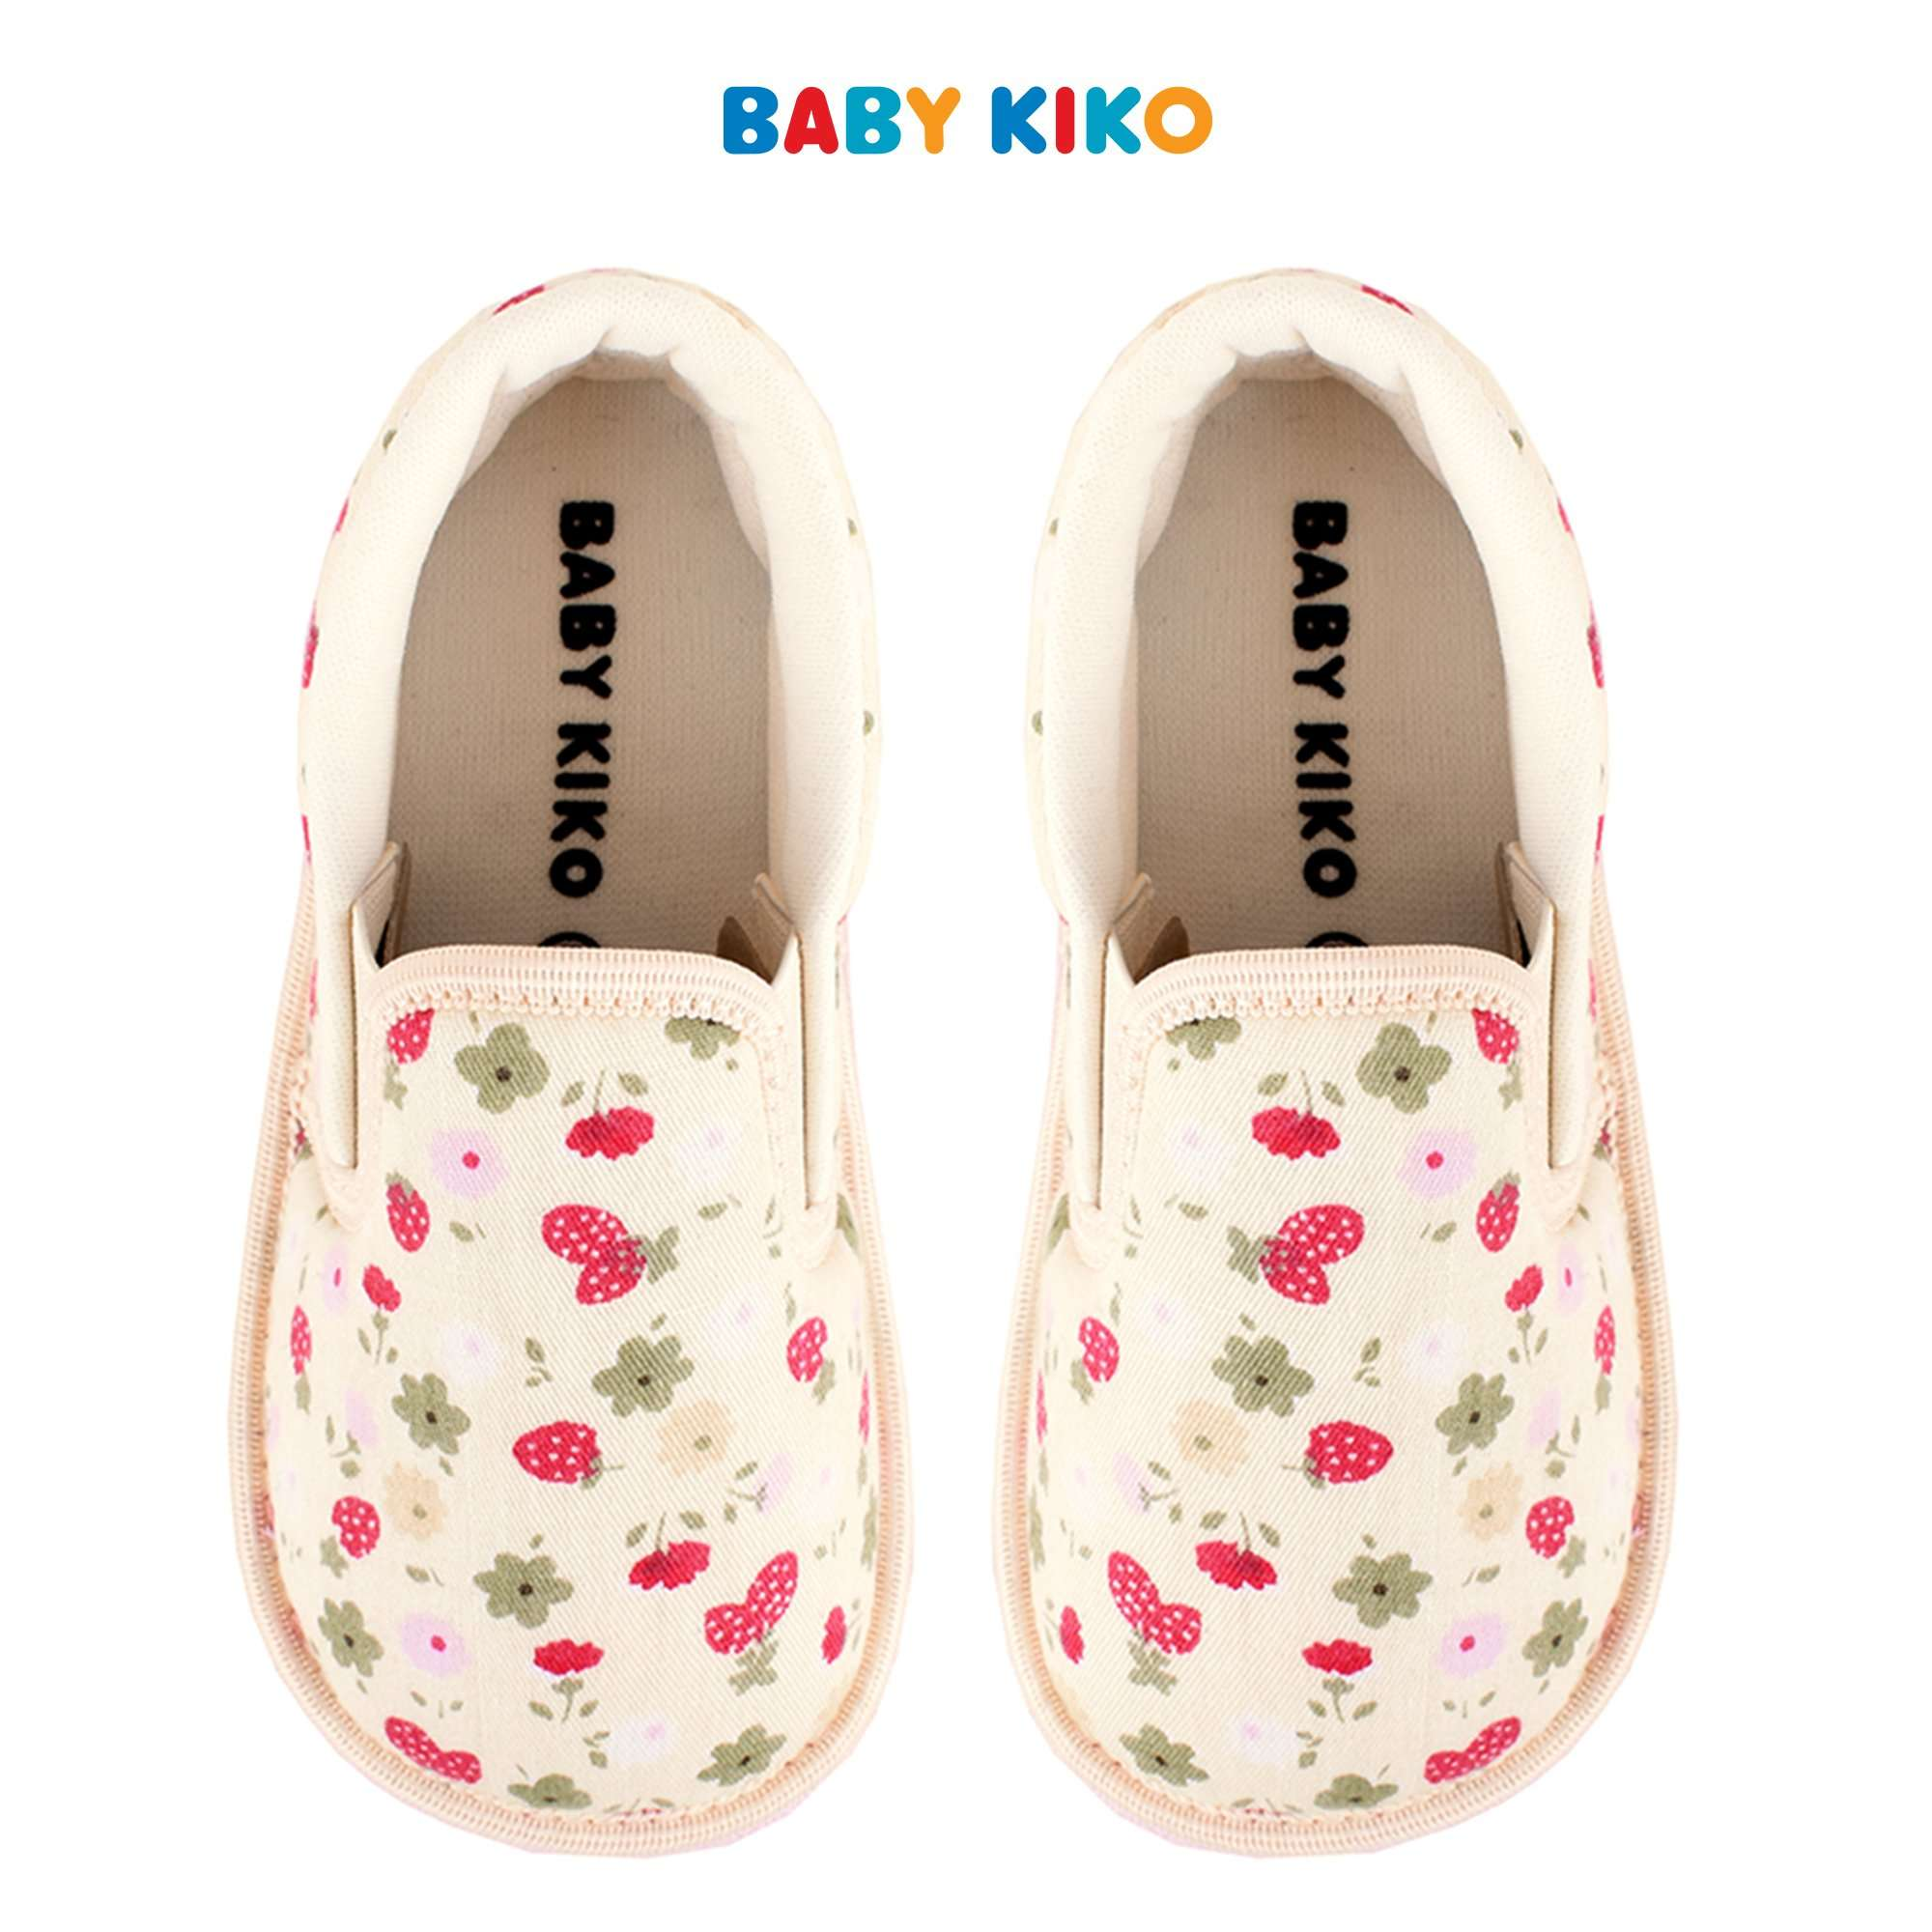 Baby KIKO Toddler Girl Textile Shoes - Beige B925106-5000-W9 : Buy Baby KIKO online at CMG.MY